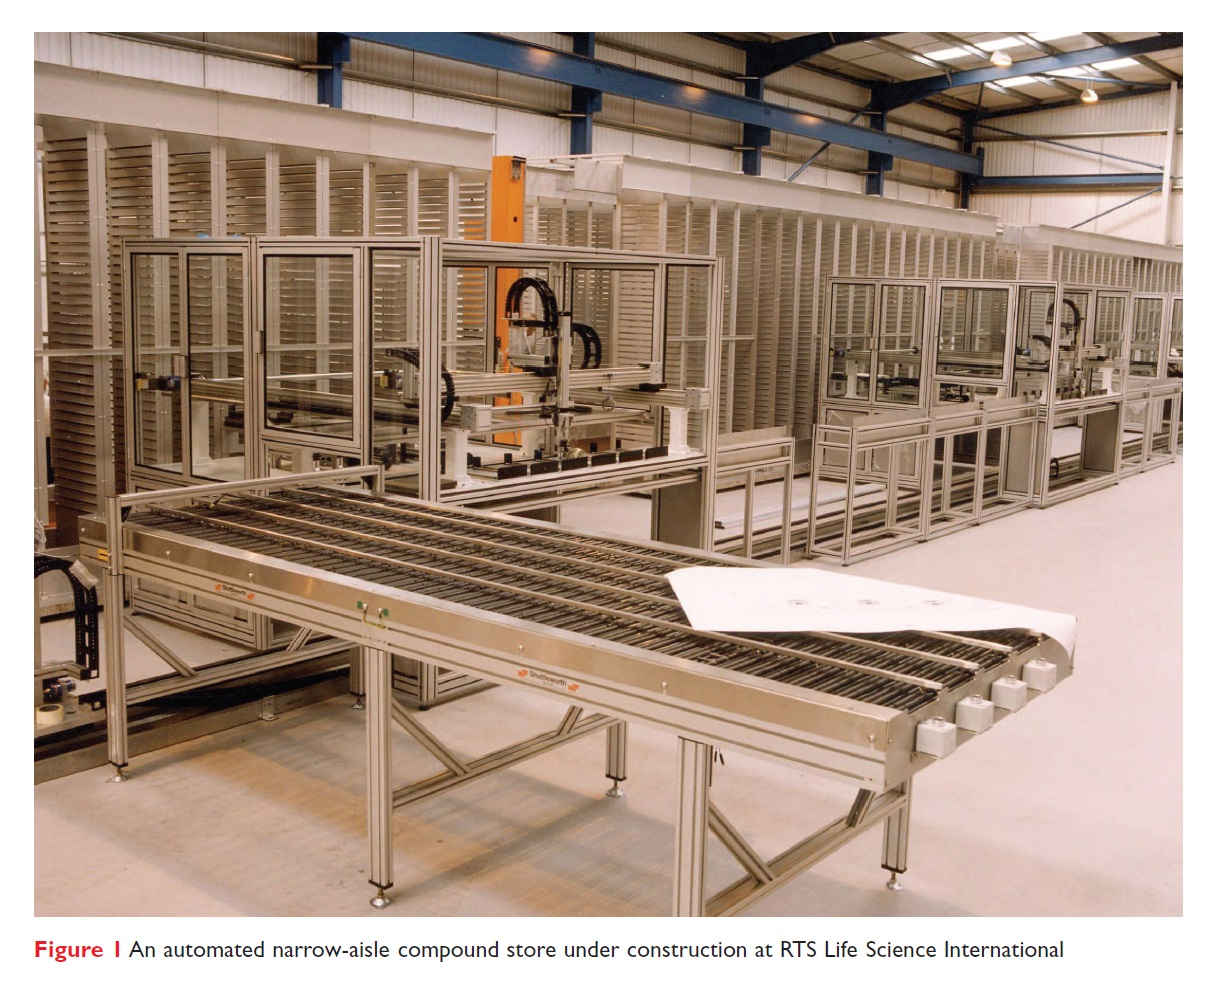 Figure 1 An automated narrow-aisle compound store under construction at RTS Life Science International